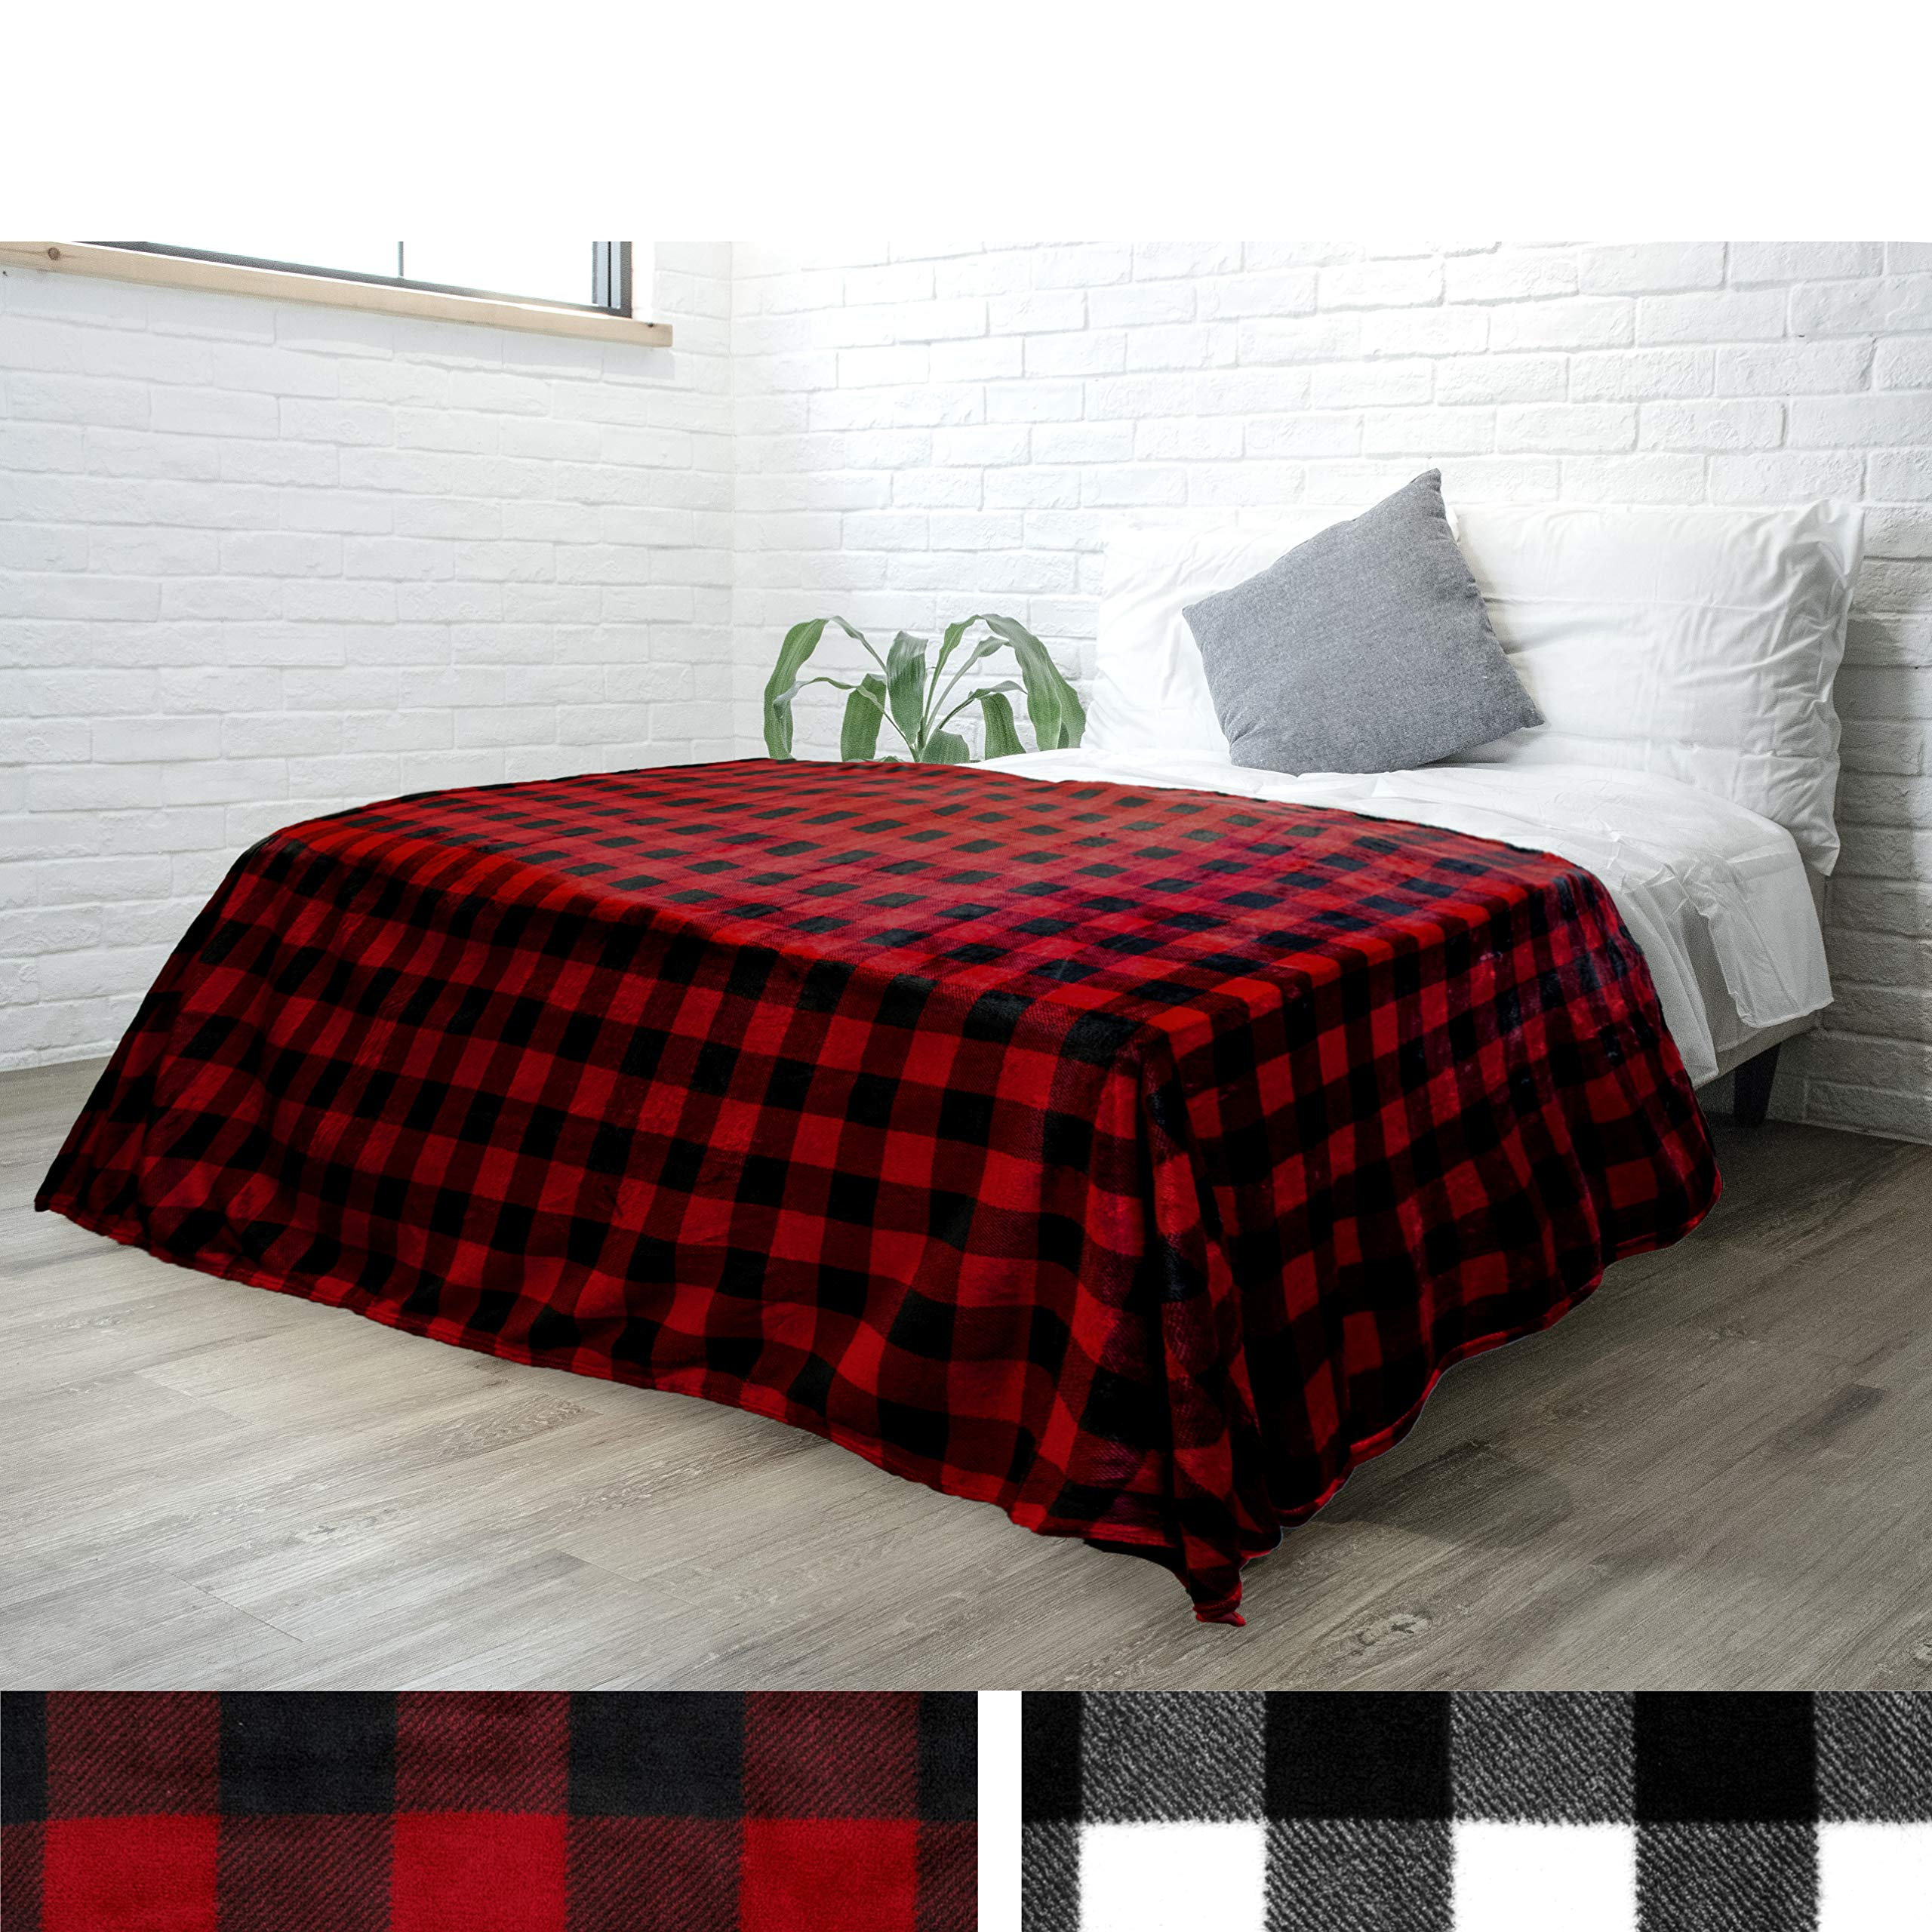 PAVILIA Flannel Fleece Buffalo Checker Blanket for Queen Bed   Super Soft Velvet Plaid Pattern Checkered Decorative Throw   Warm Cozy Lightweight Microfiber   90 x 90 Inches Plaid Red/Black